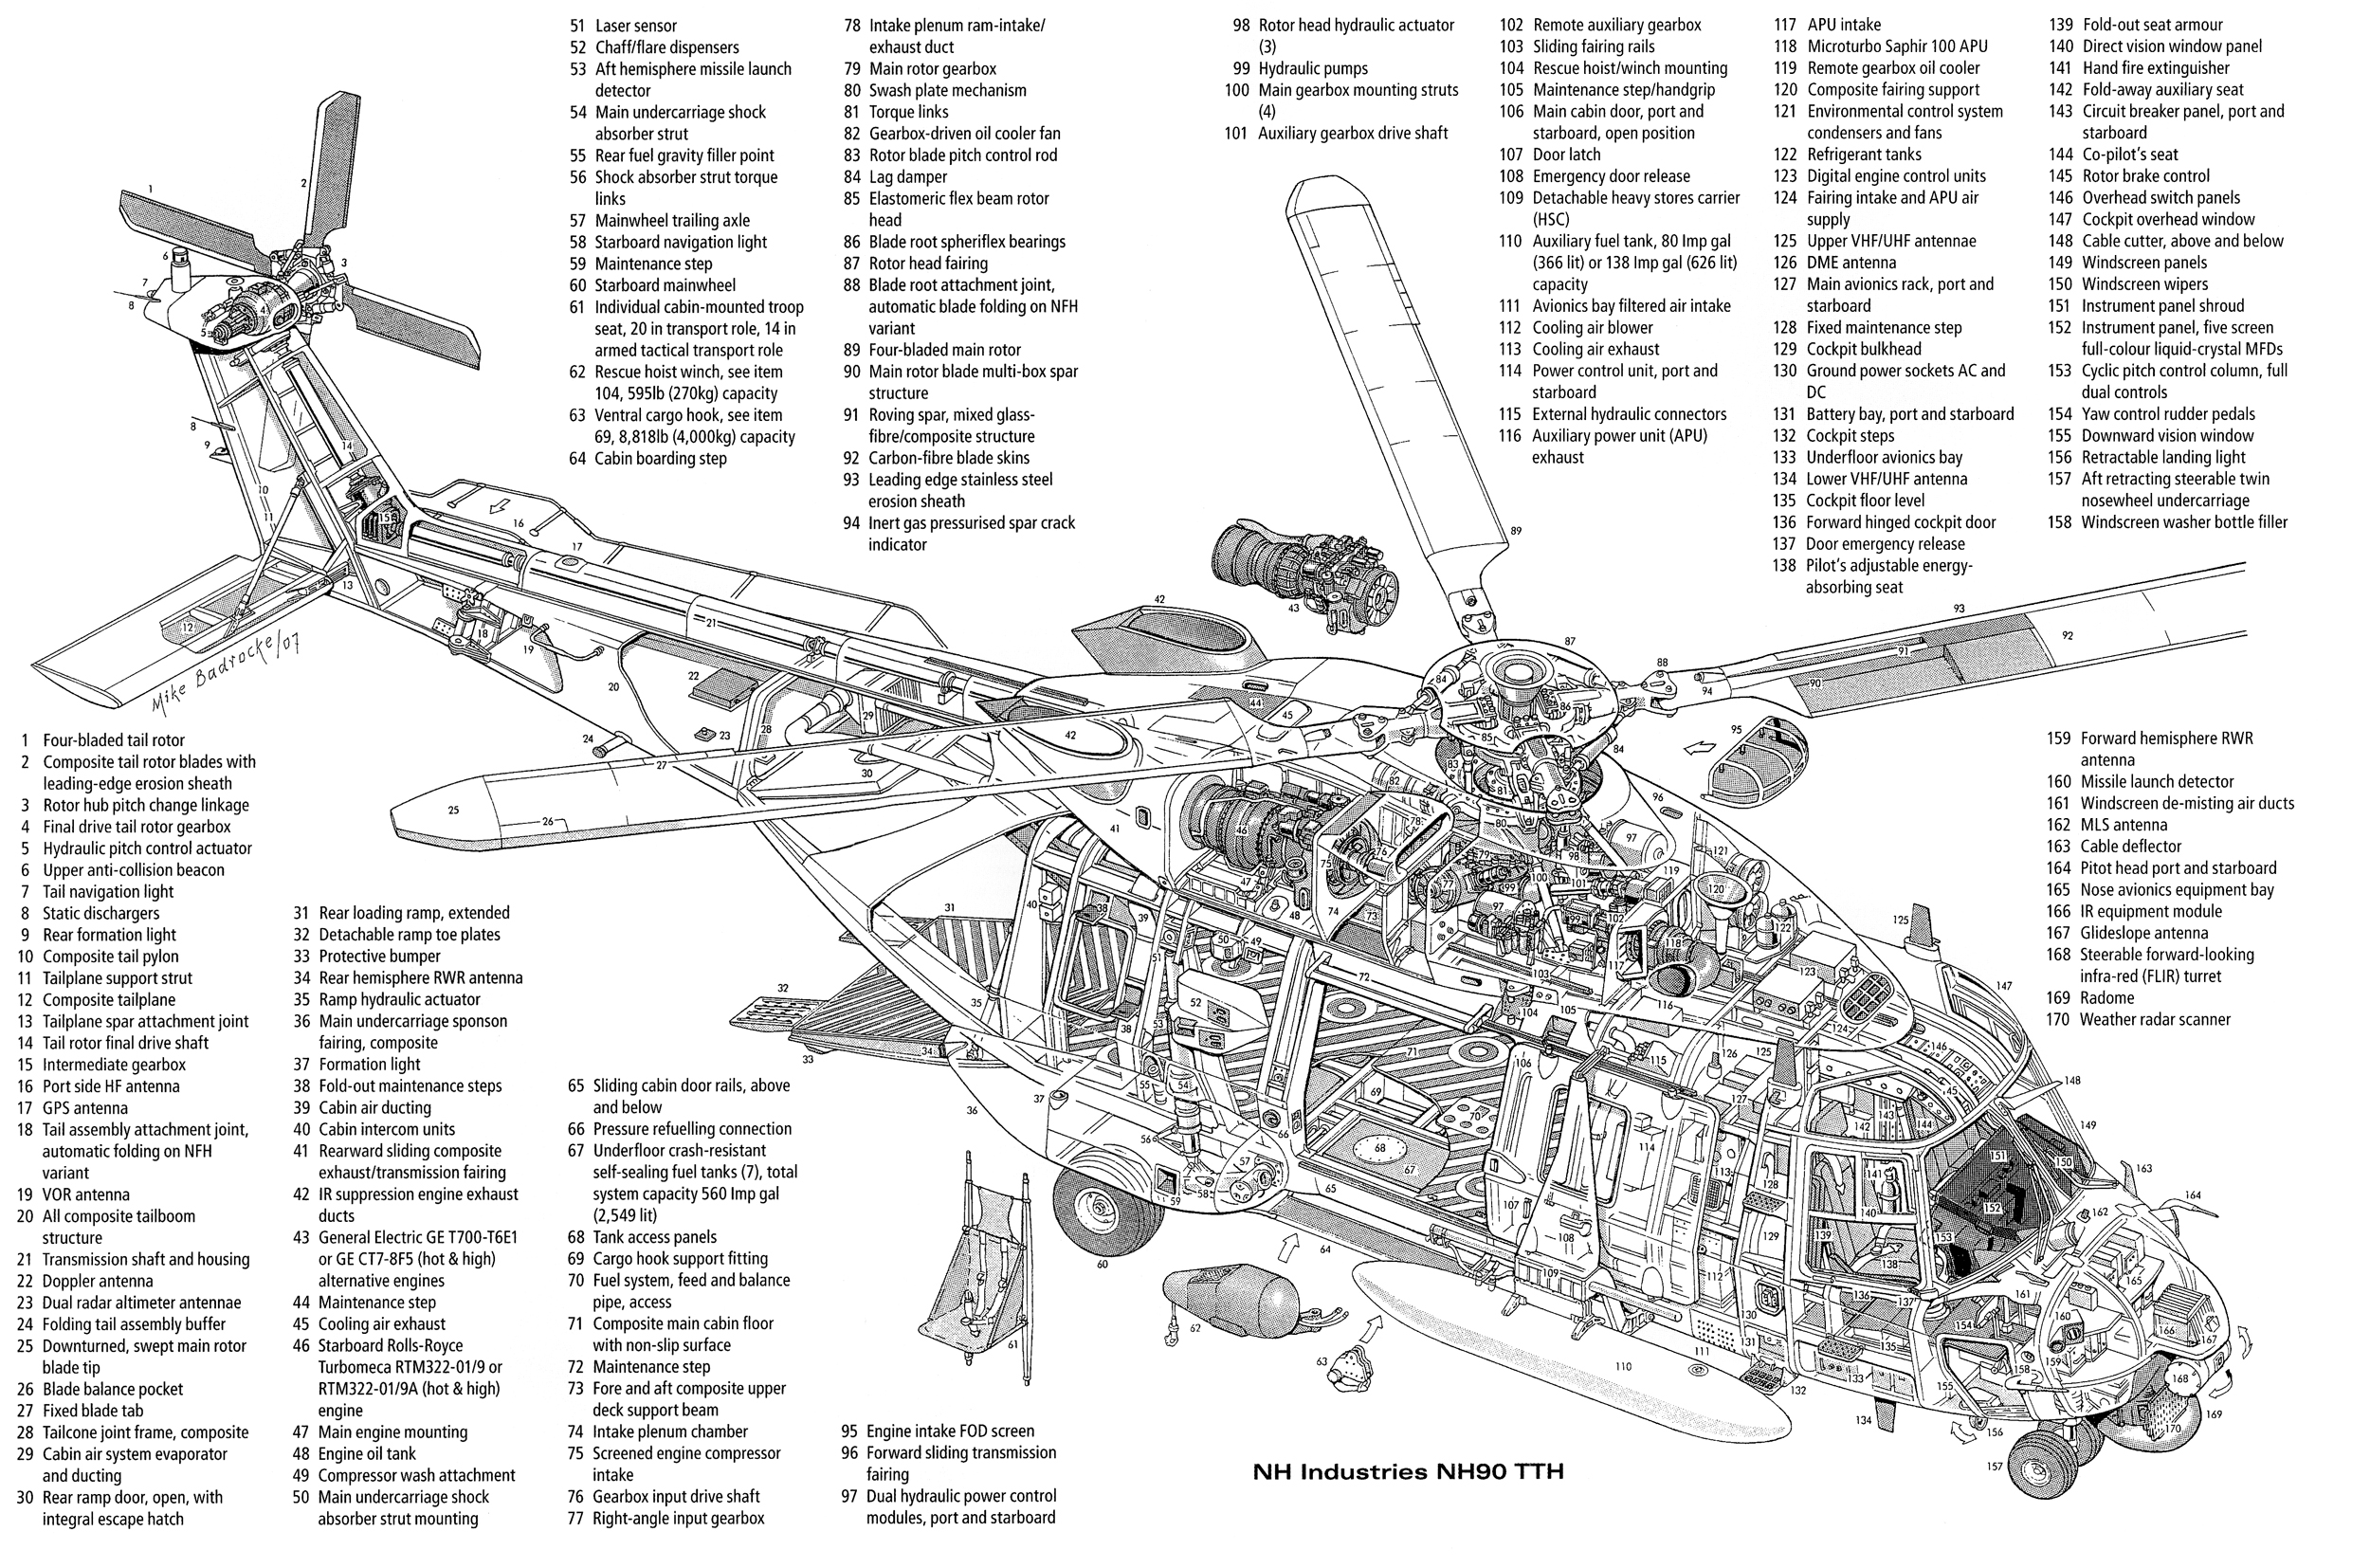 rolls royce merlin engine diagram cfm56 engine diagram